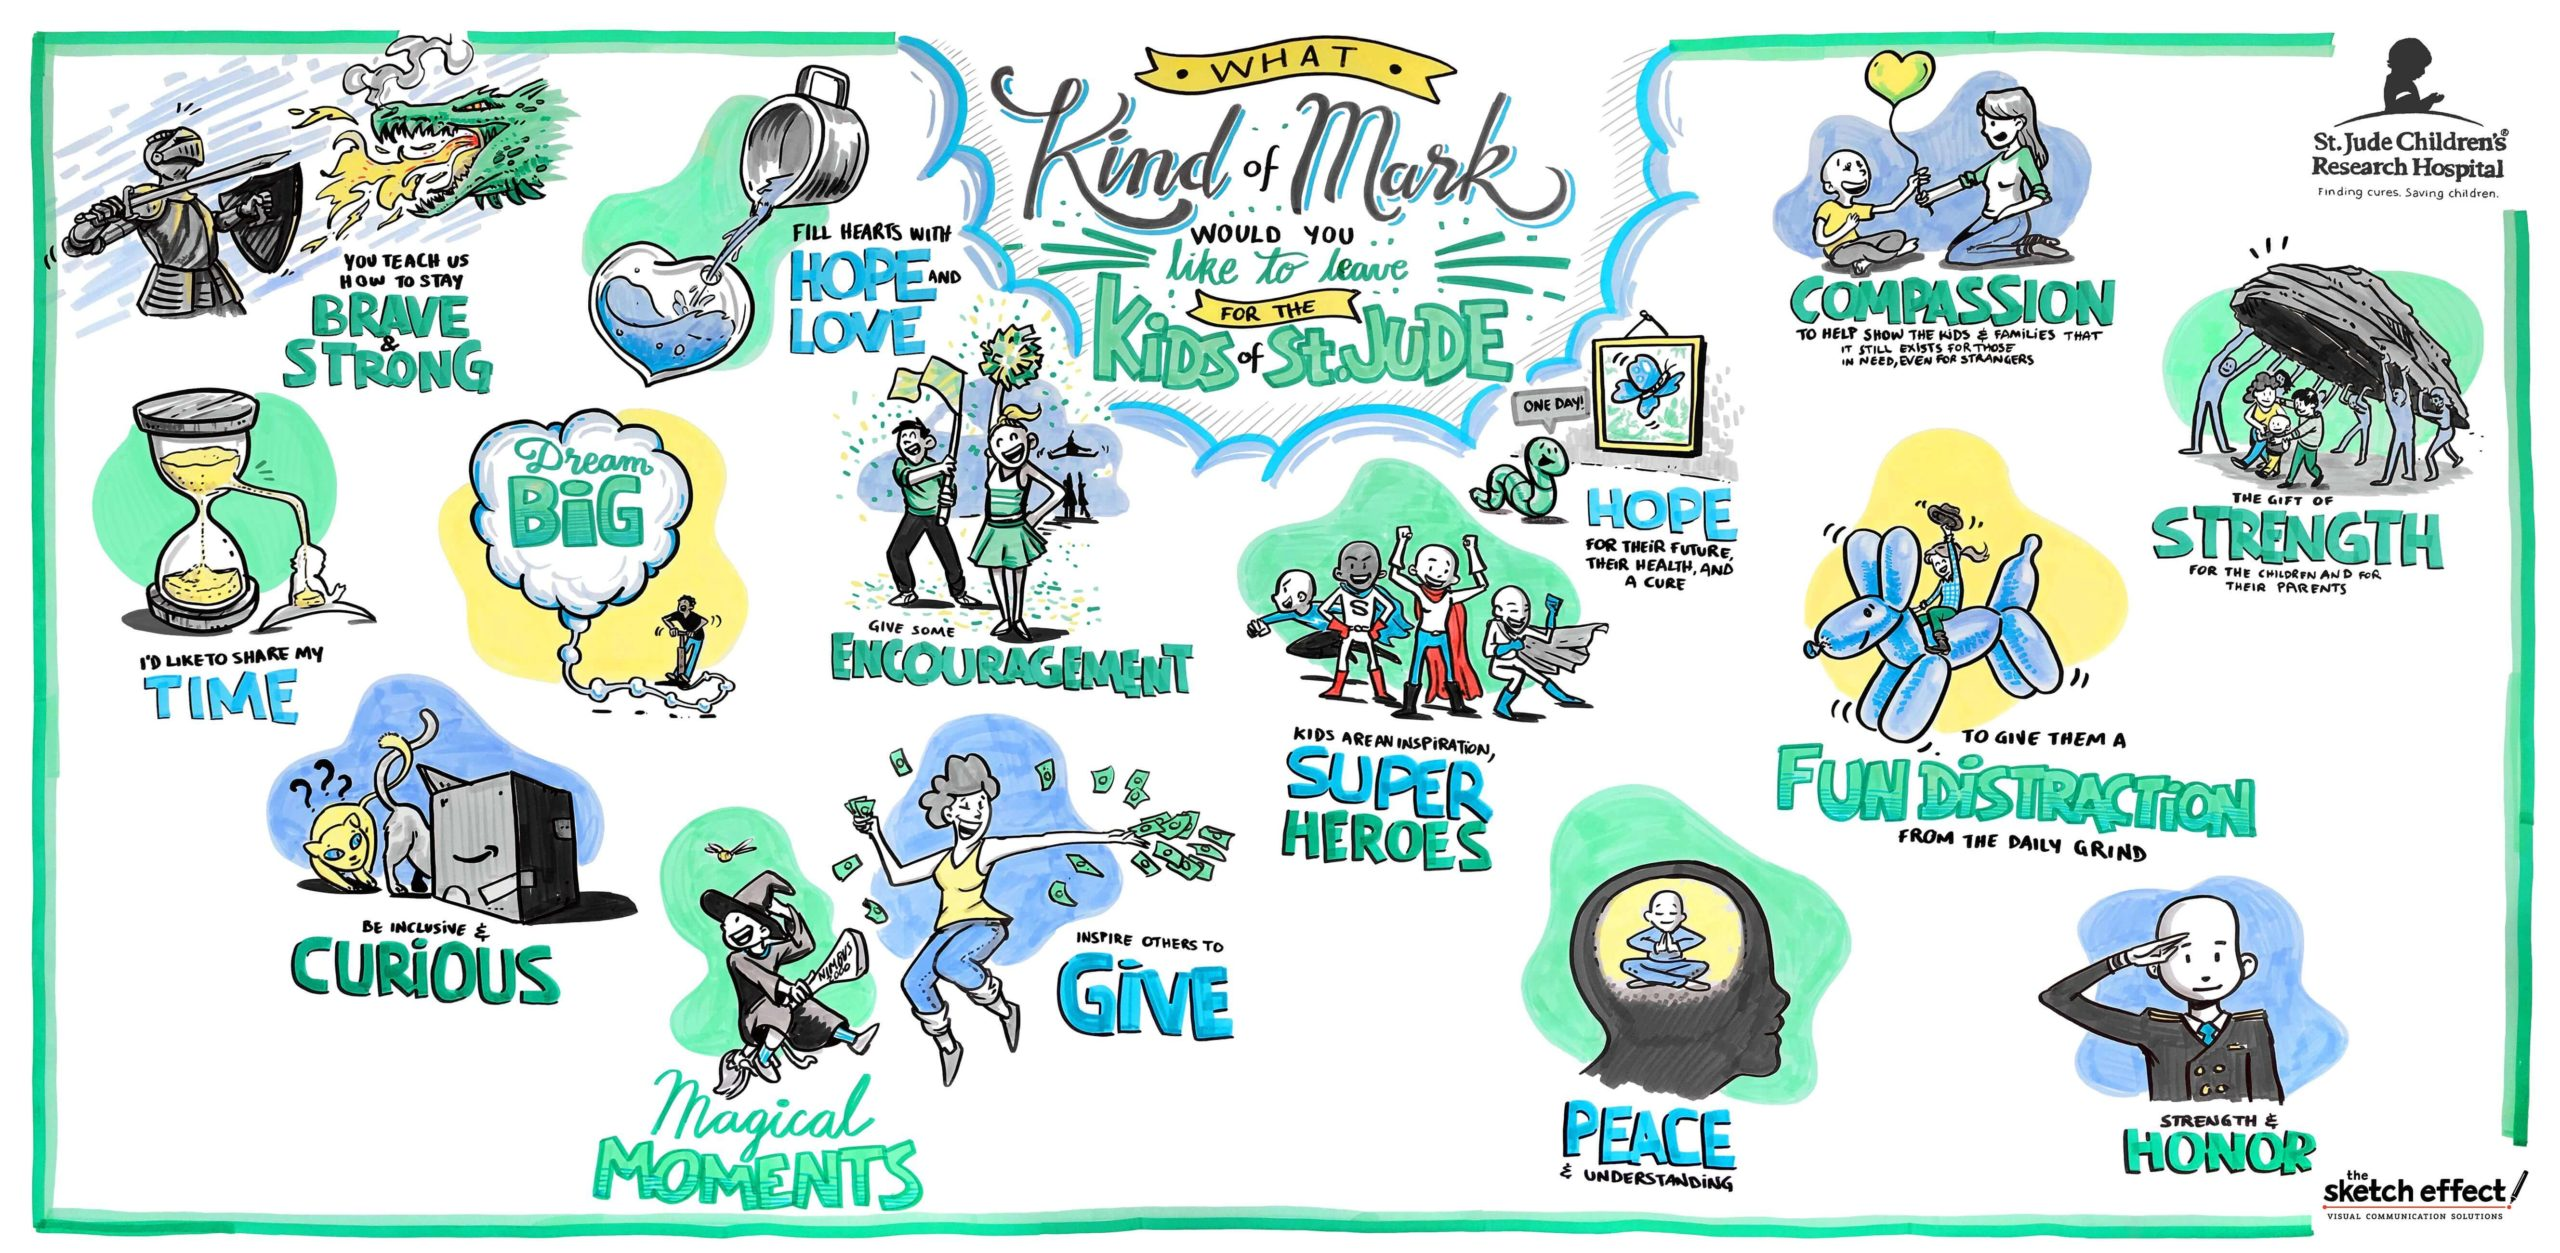 Graphic recording / live sketch used in Kids of St. Jude presentation